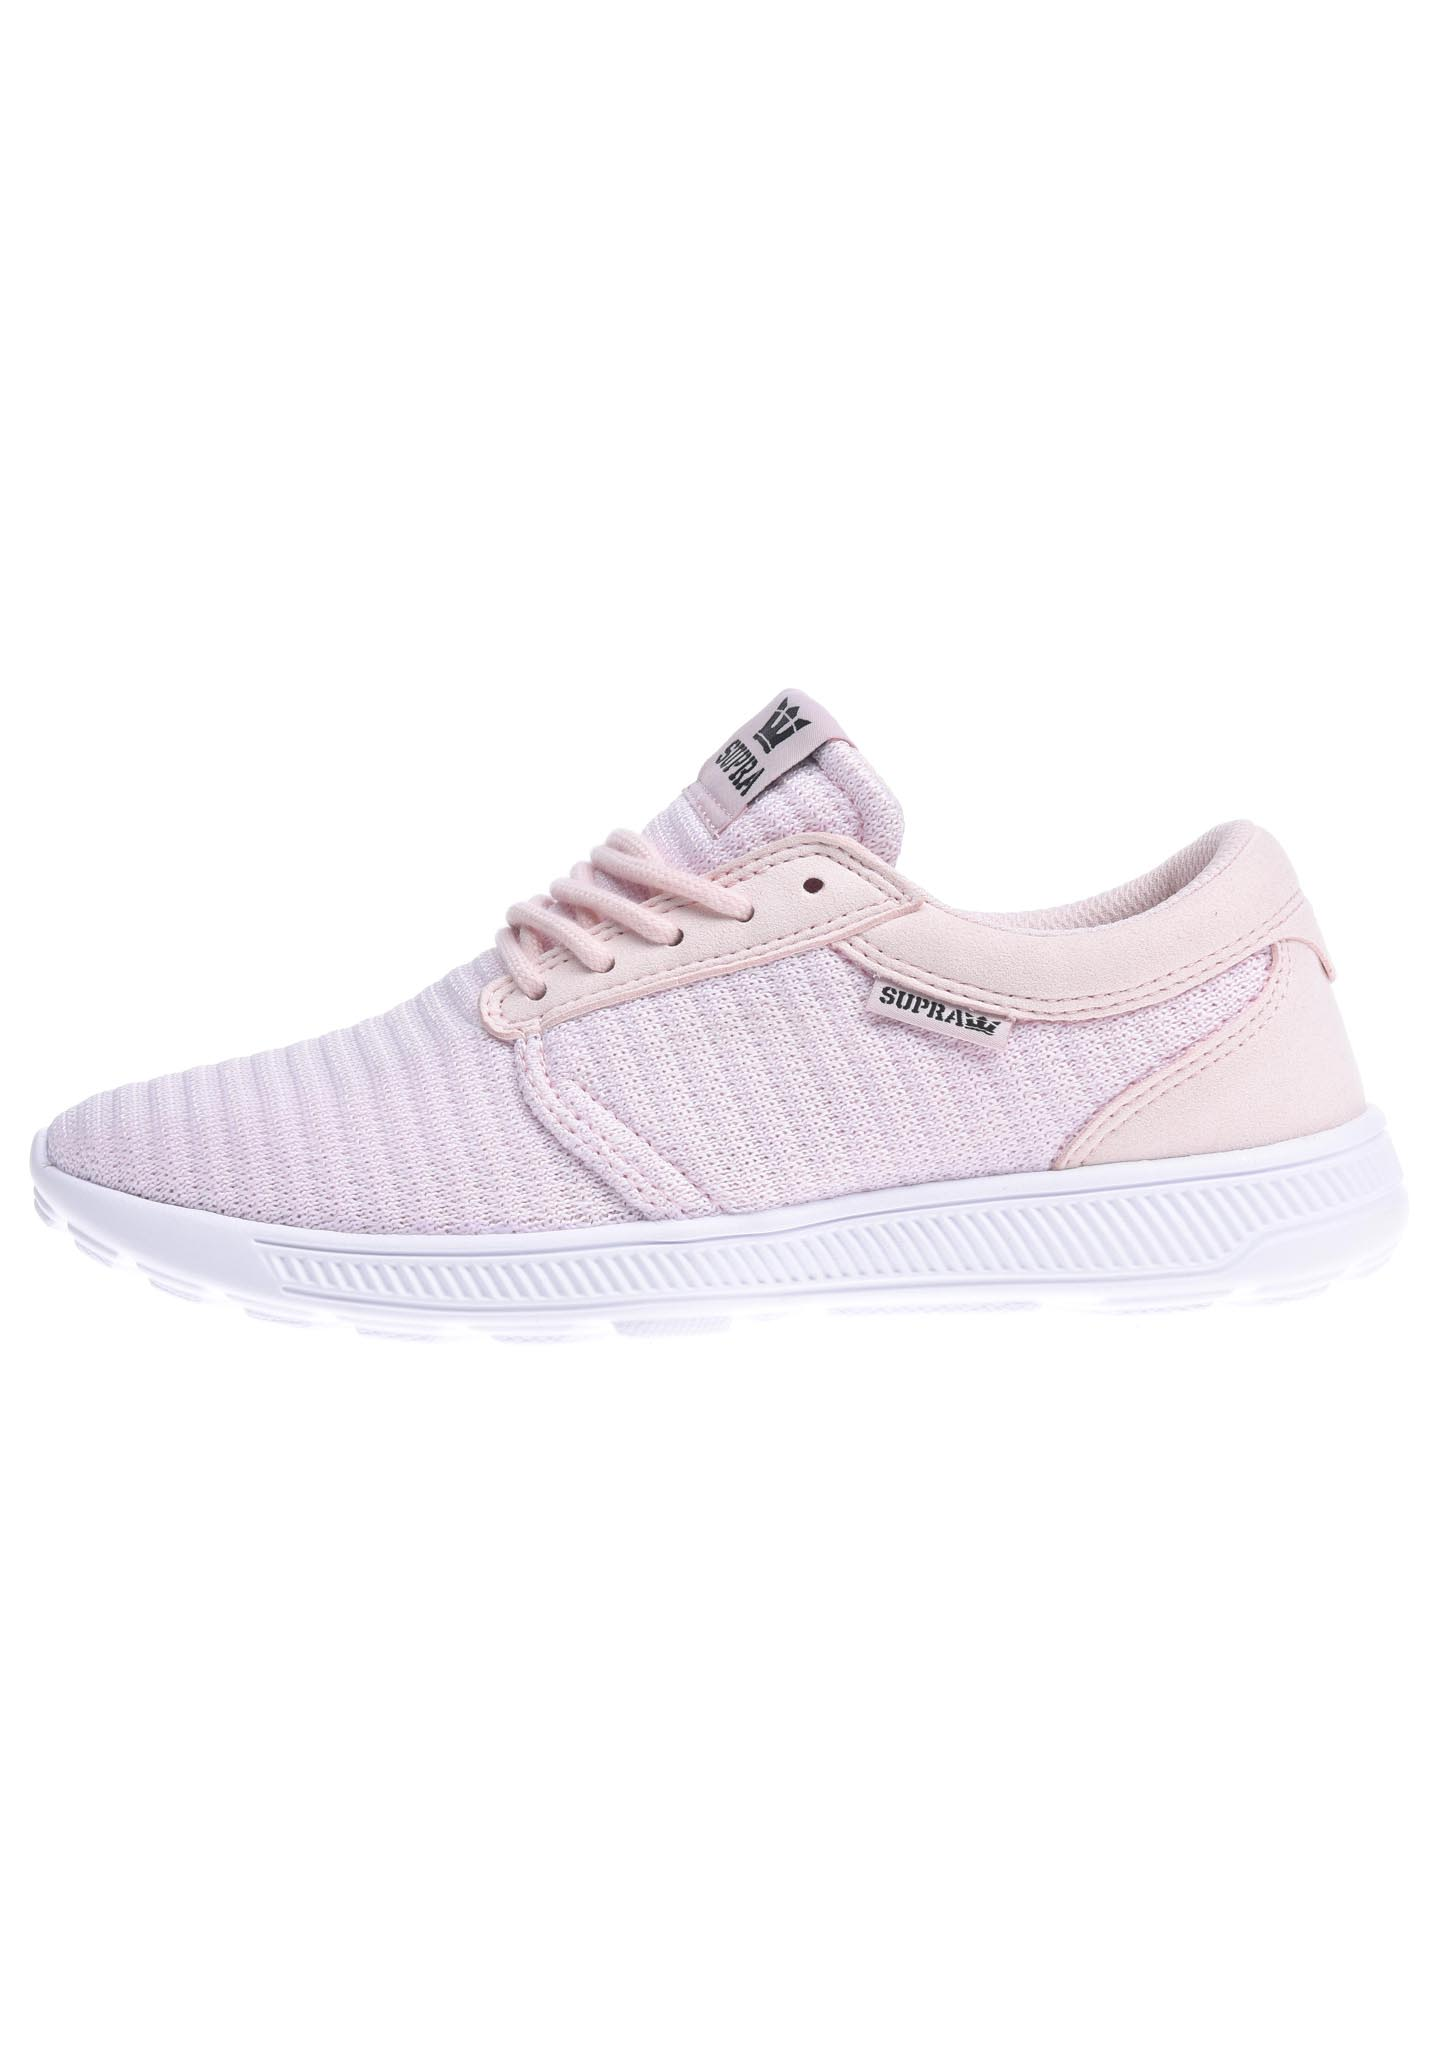 c5201f0ab3a9 SUPRA Hammer Run - Sneakers for Women - Pink - Planet Sports